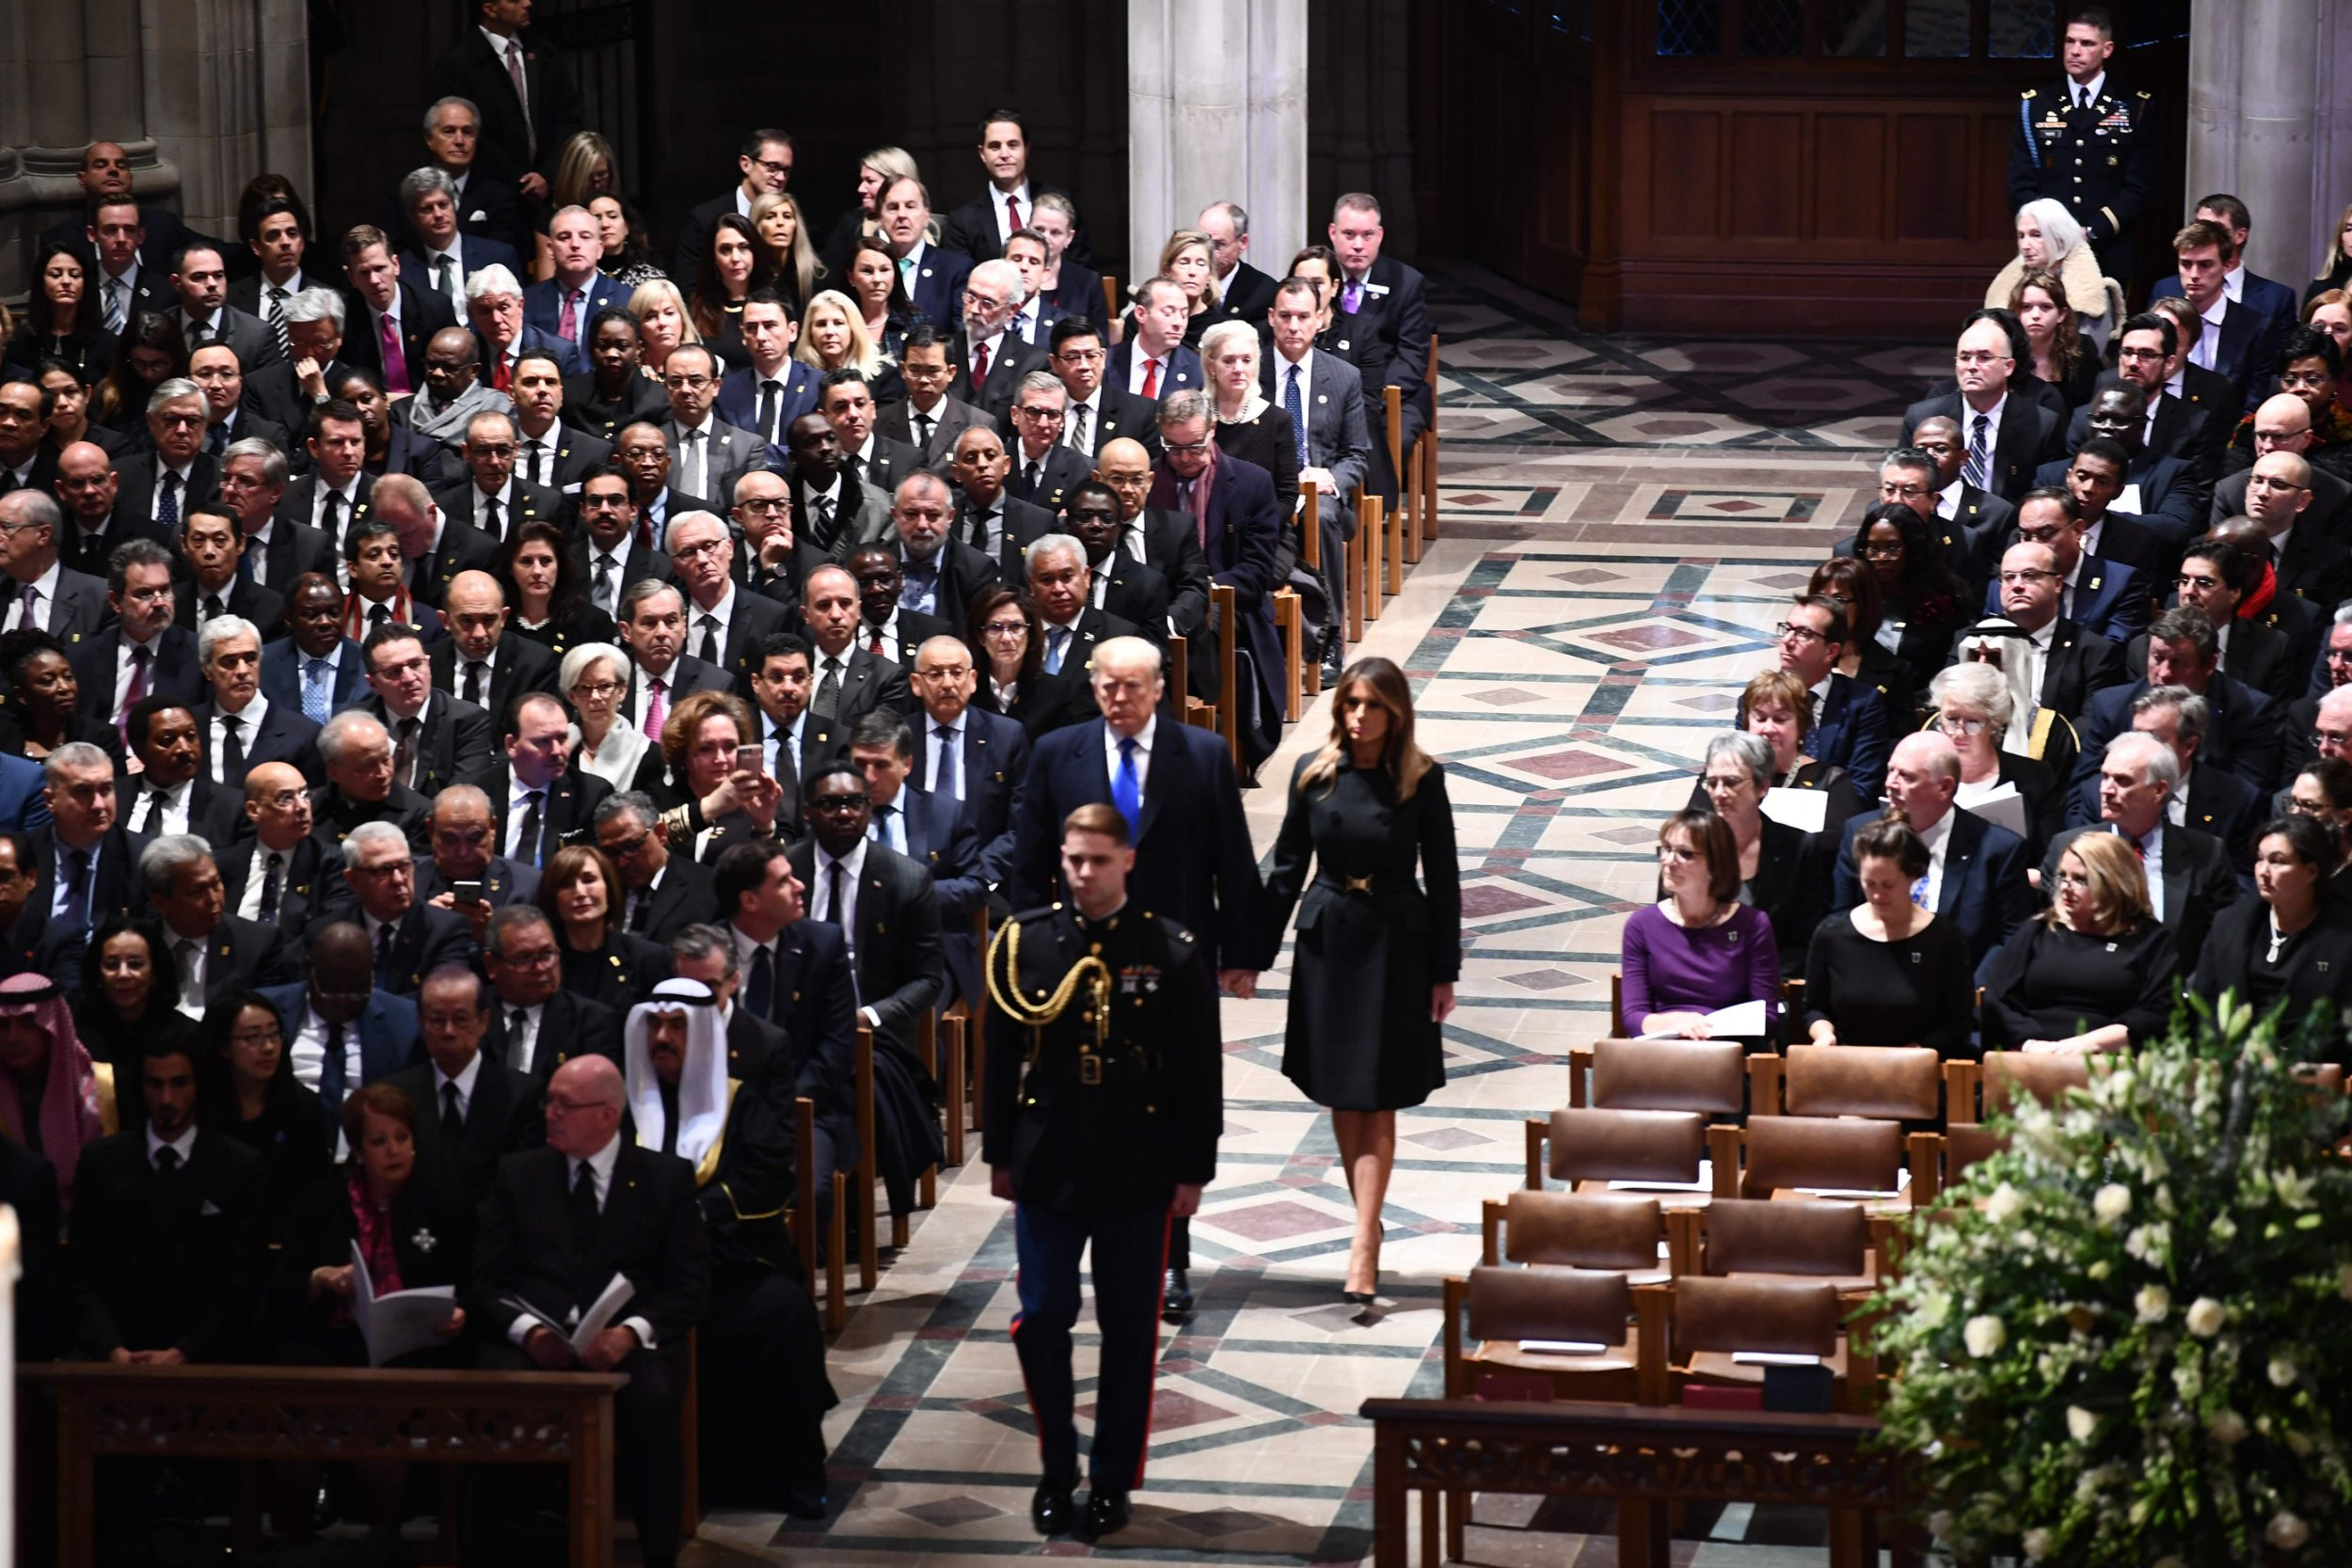 US President Donald Trump and First Lady Melania Trump arrive for the funeral service for former US president George H. W. Bush at the National Cathedral in Washington, DC on December 5, 2018. (Photo by AFP)/AFP/Getty Images